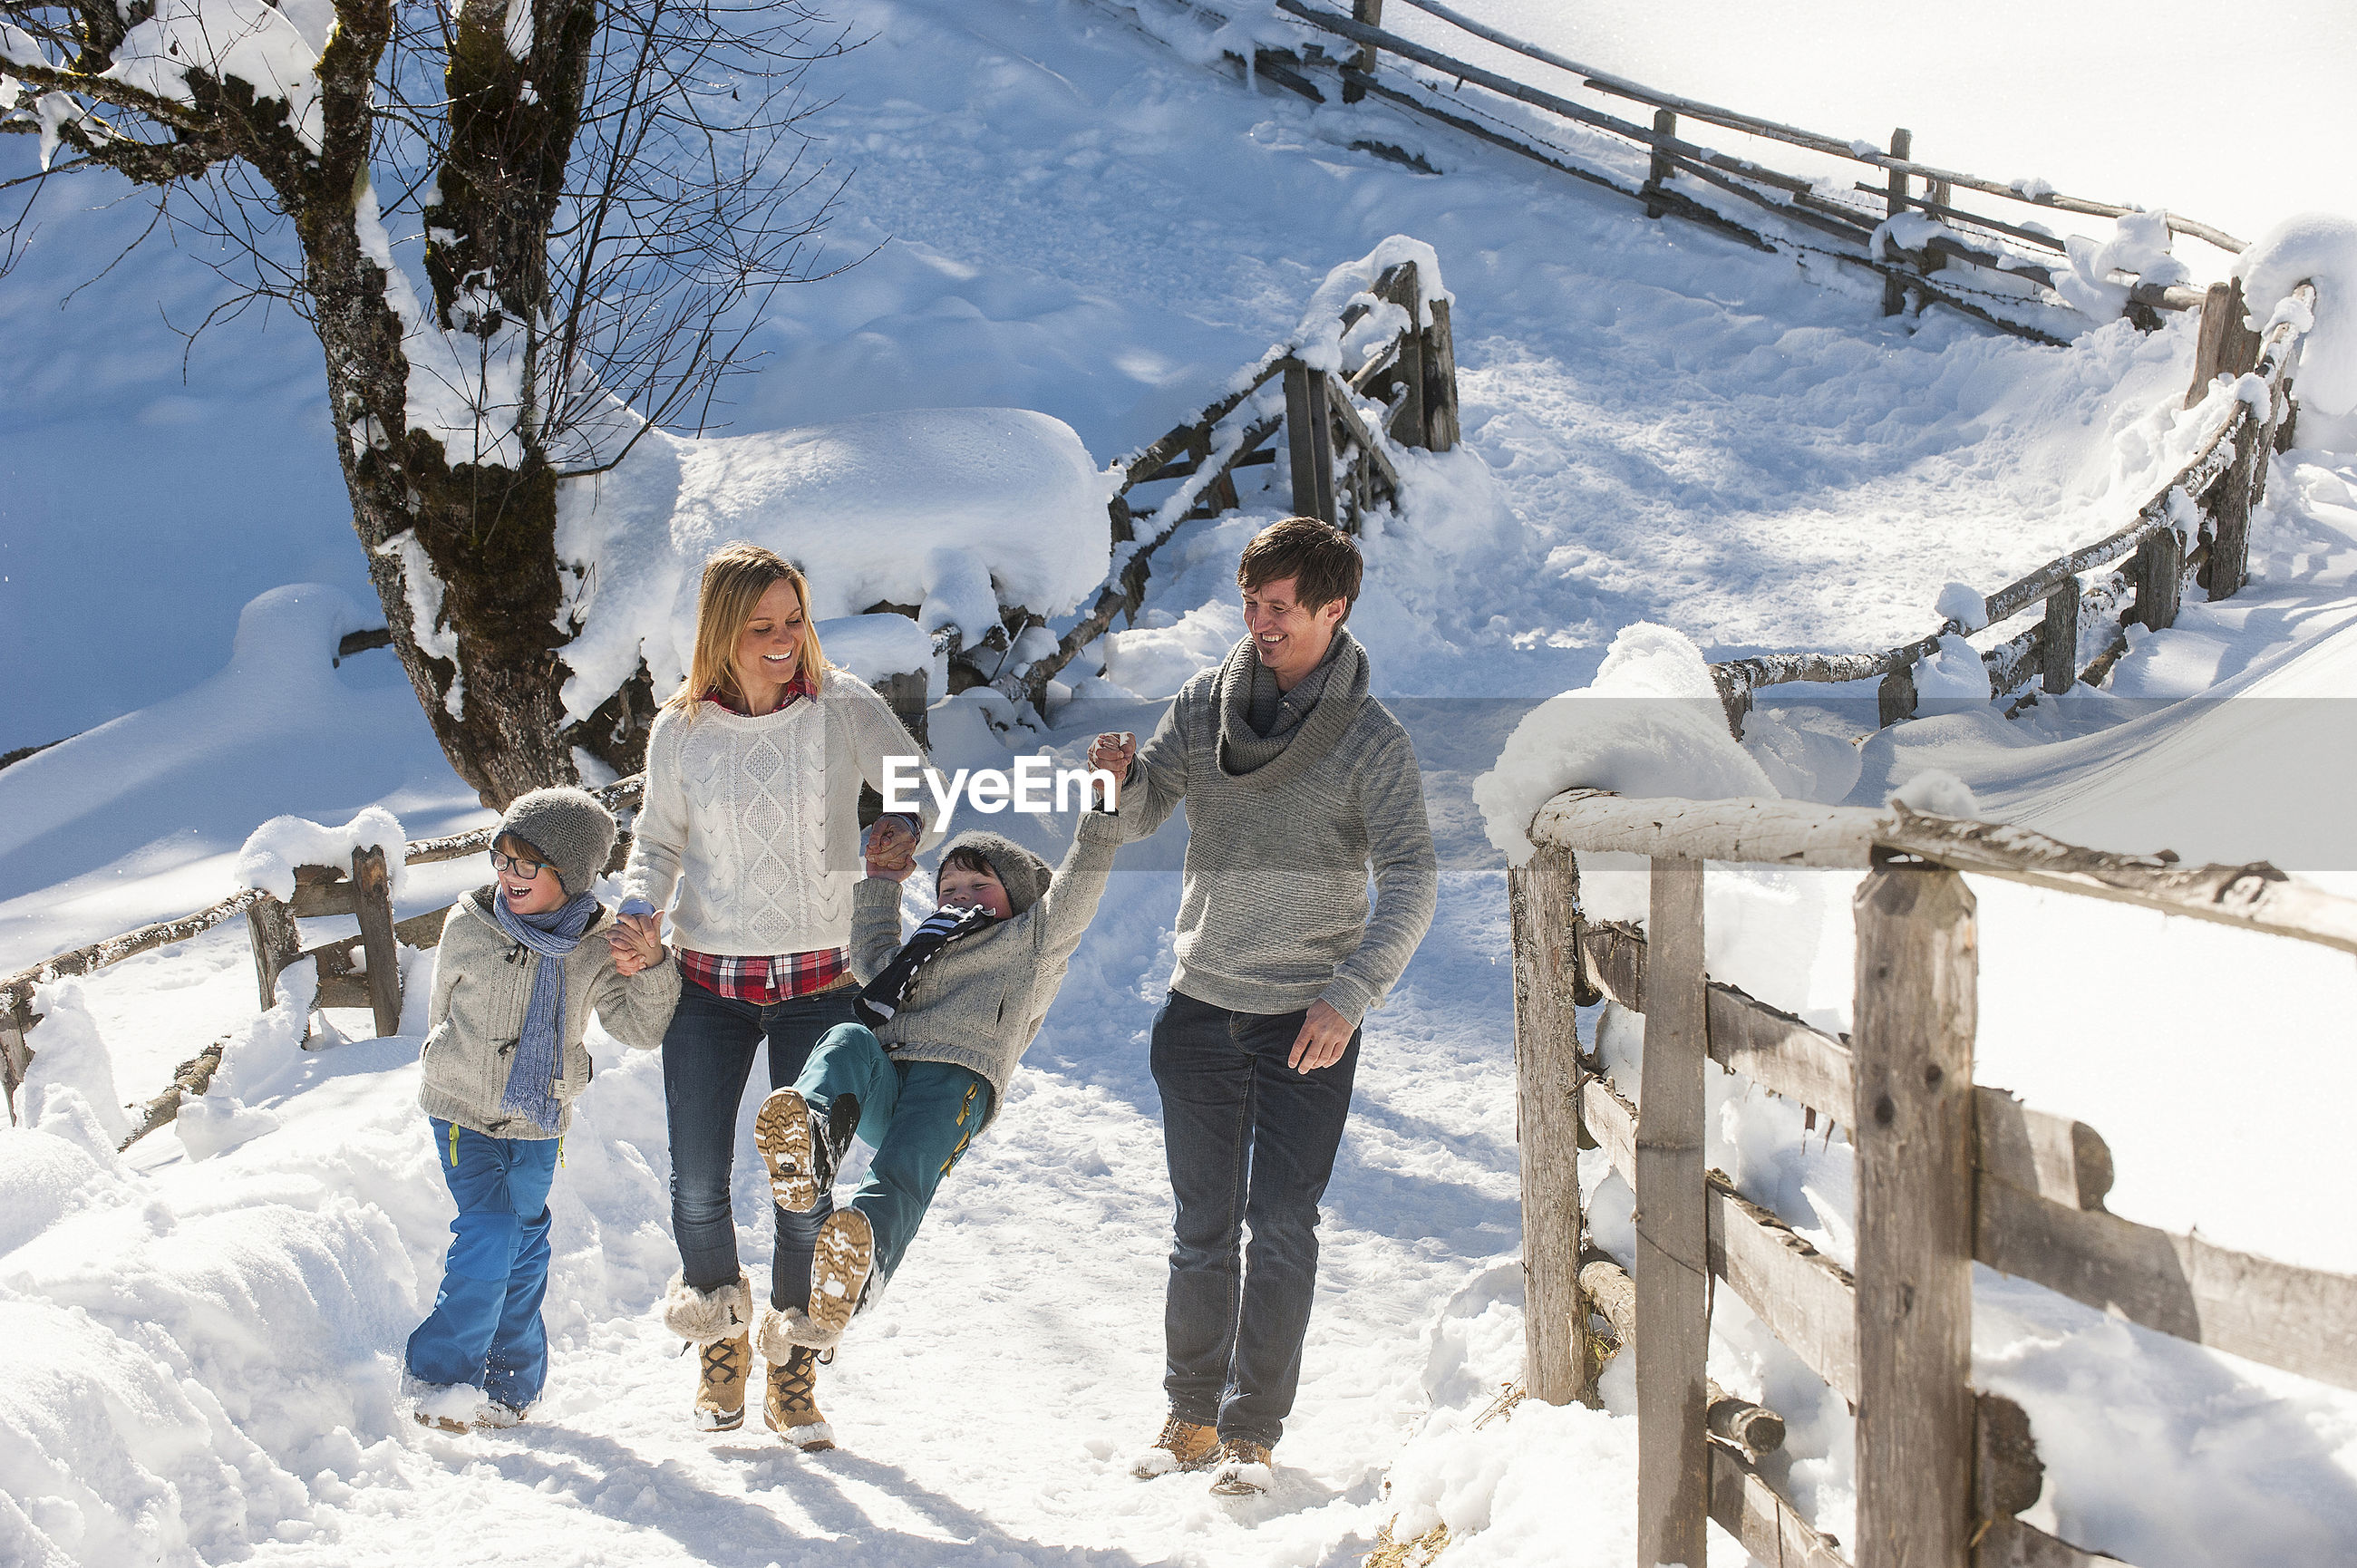 GROUP OF PEOPLE ON SNOW